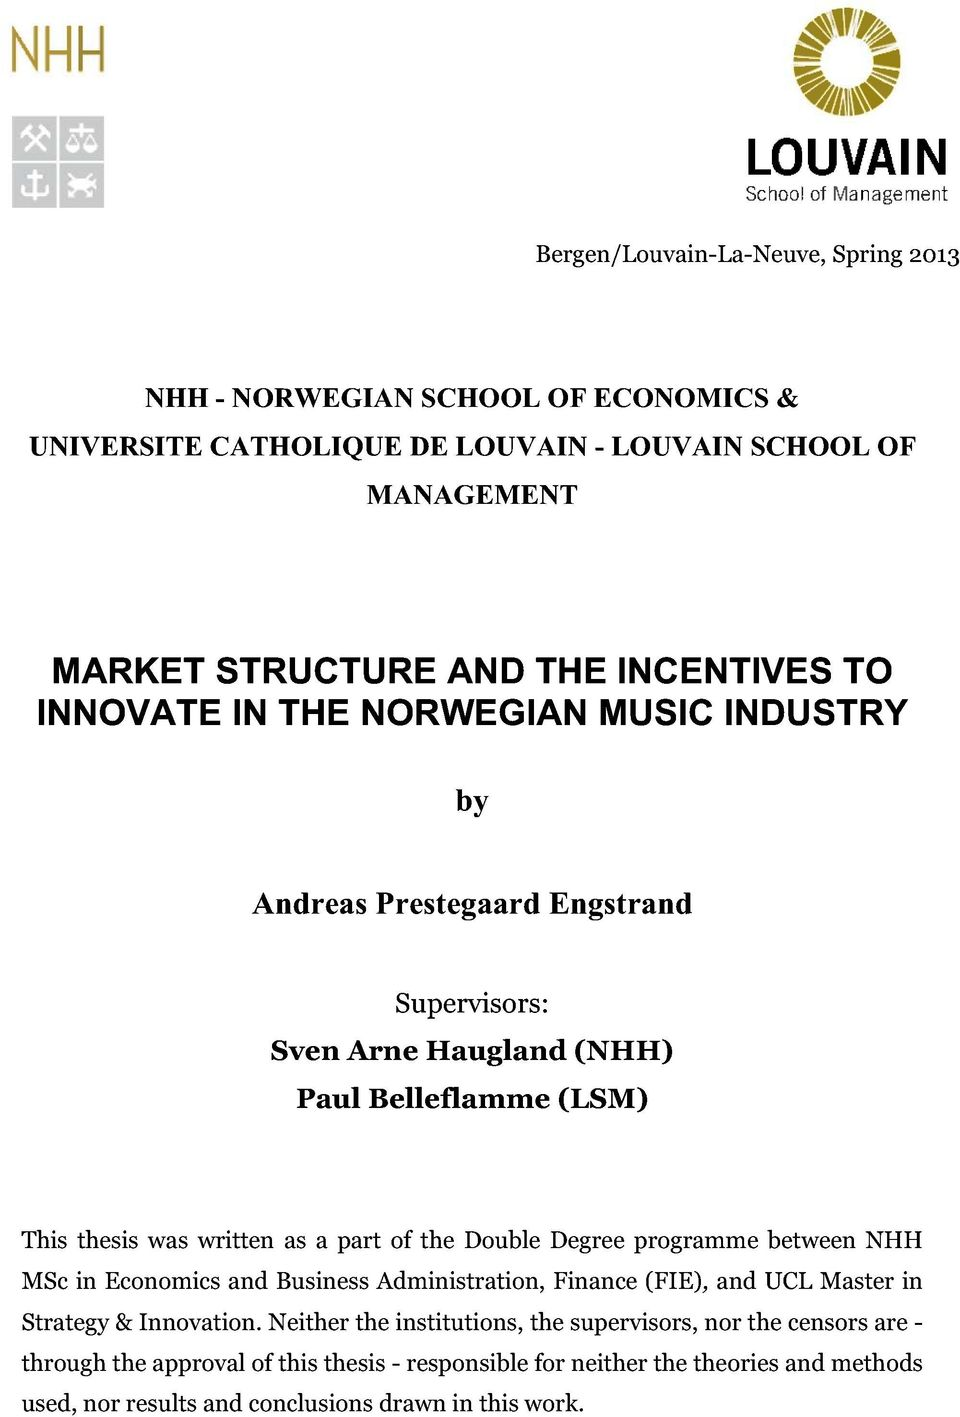 ucl msc economics dissertation Msc economics 2018/2019 programme structure and module options term 1  advanced core options will qualify for a conditional offer upon applying to the ucl mres/mphil/phd economics programme  dissertation research methods course.